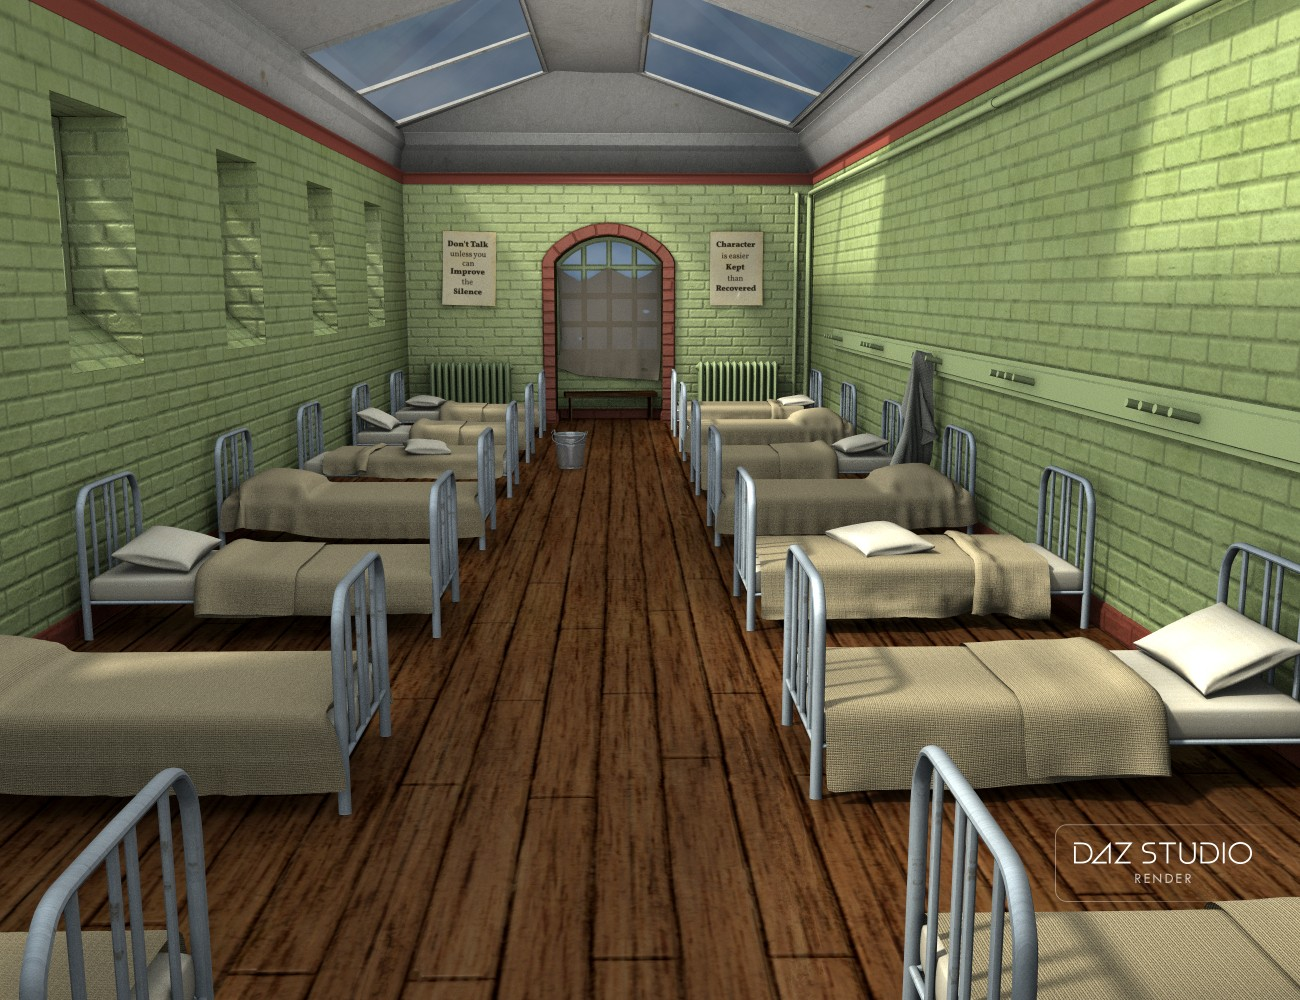 Download Daz Studio 3 For Free Daz 3d The Old Orphanage